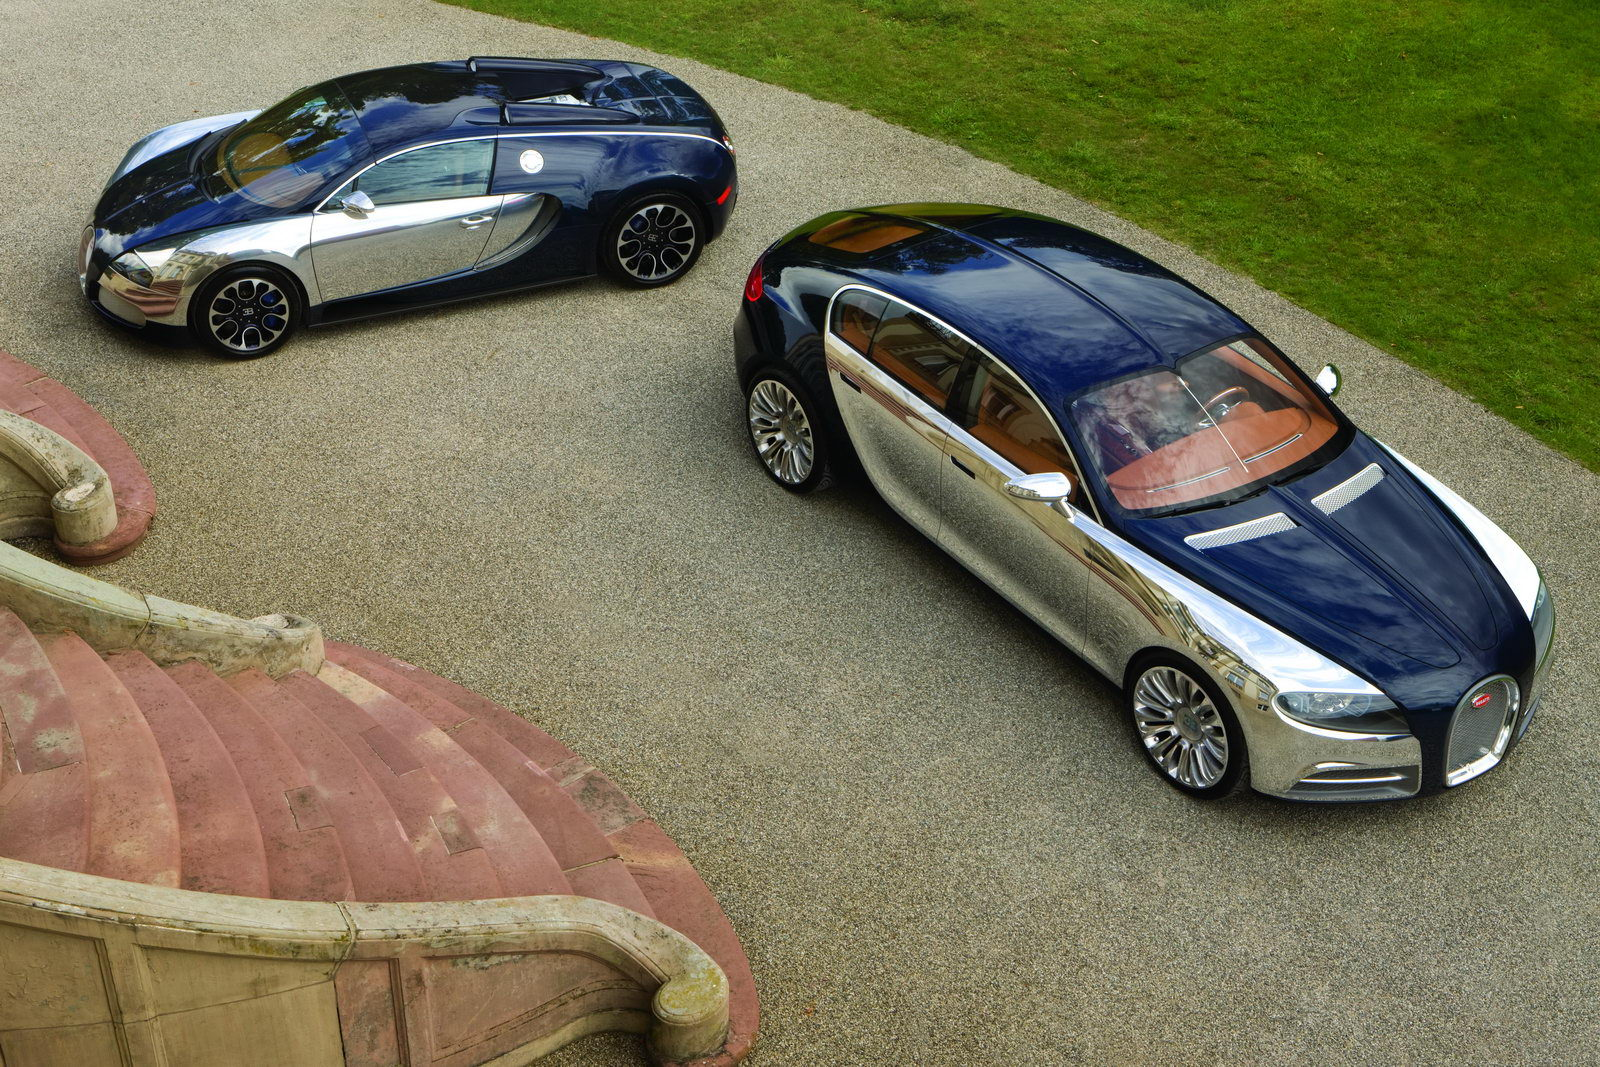 Bugatti Galibier Having Presented A Series Of Photos New Magnificent Wallpaper For Phone